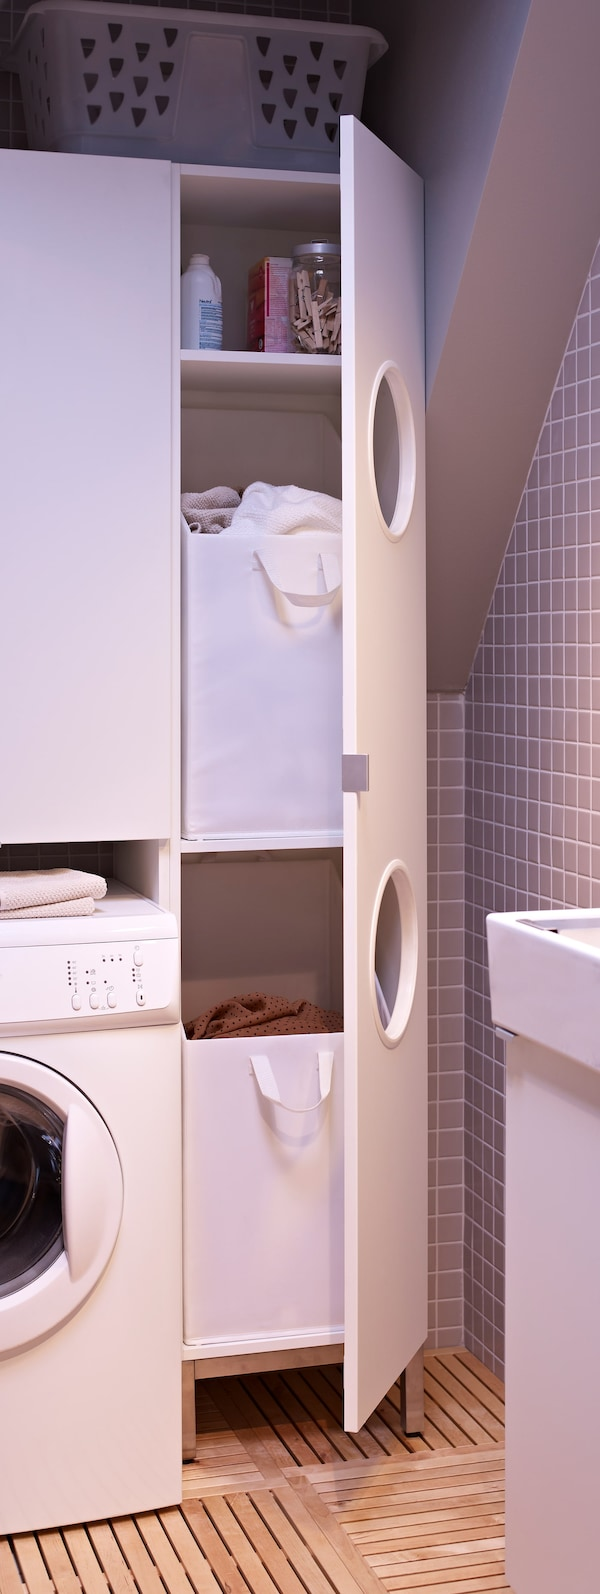 Bathroom and laundry room in one   IKEA